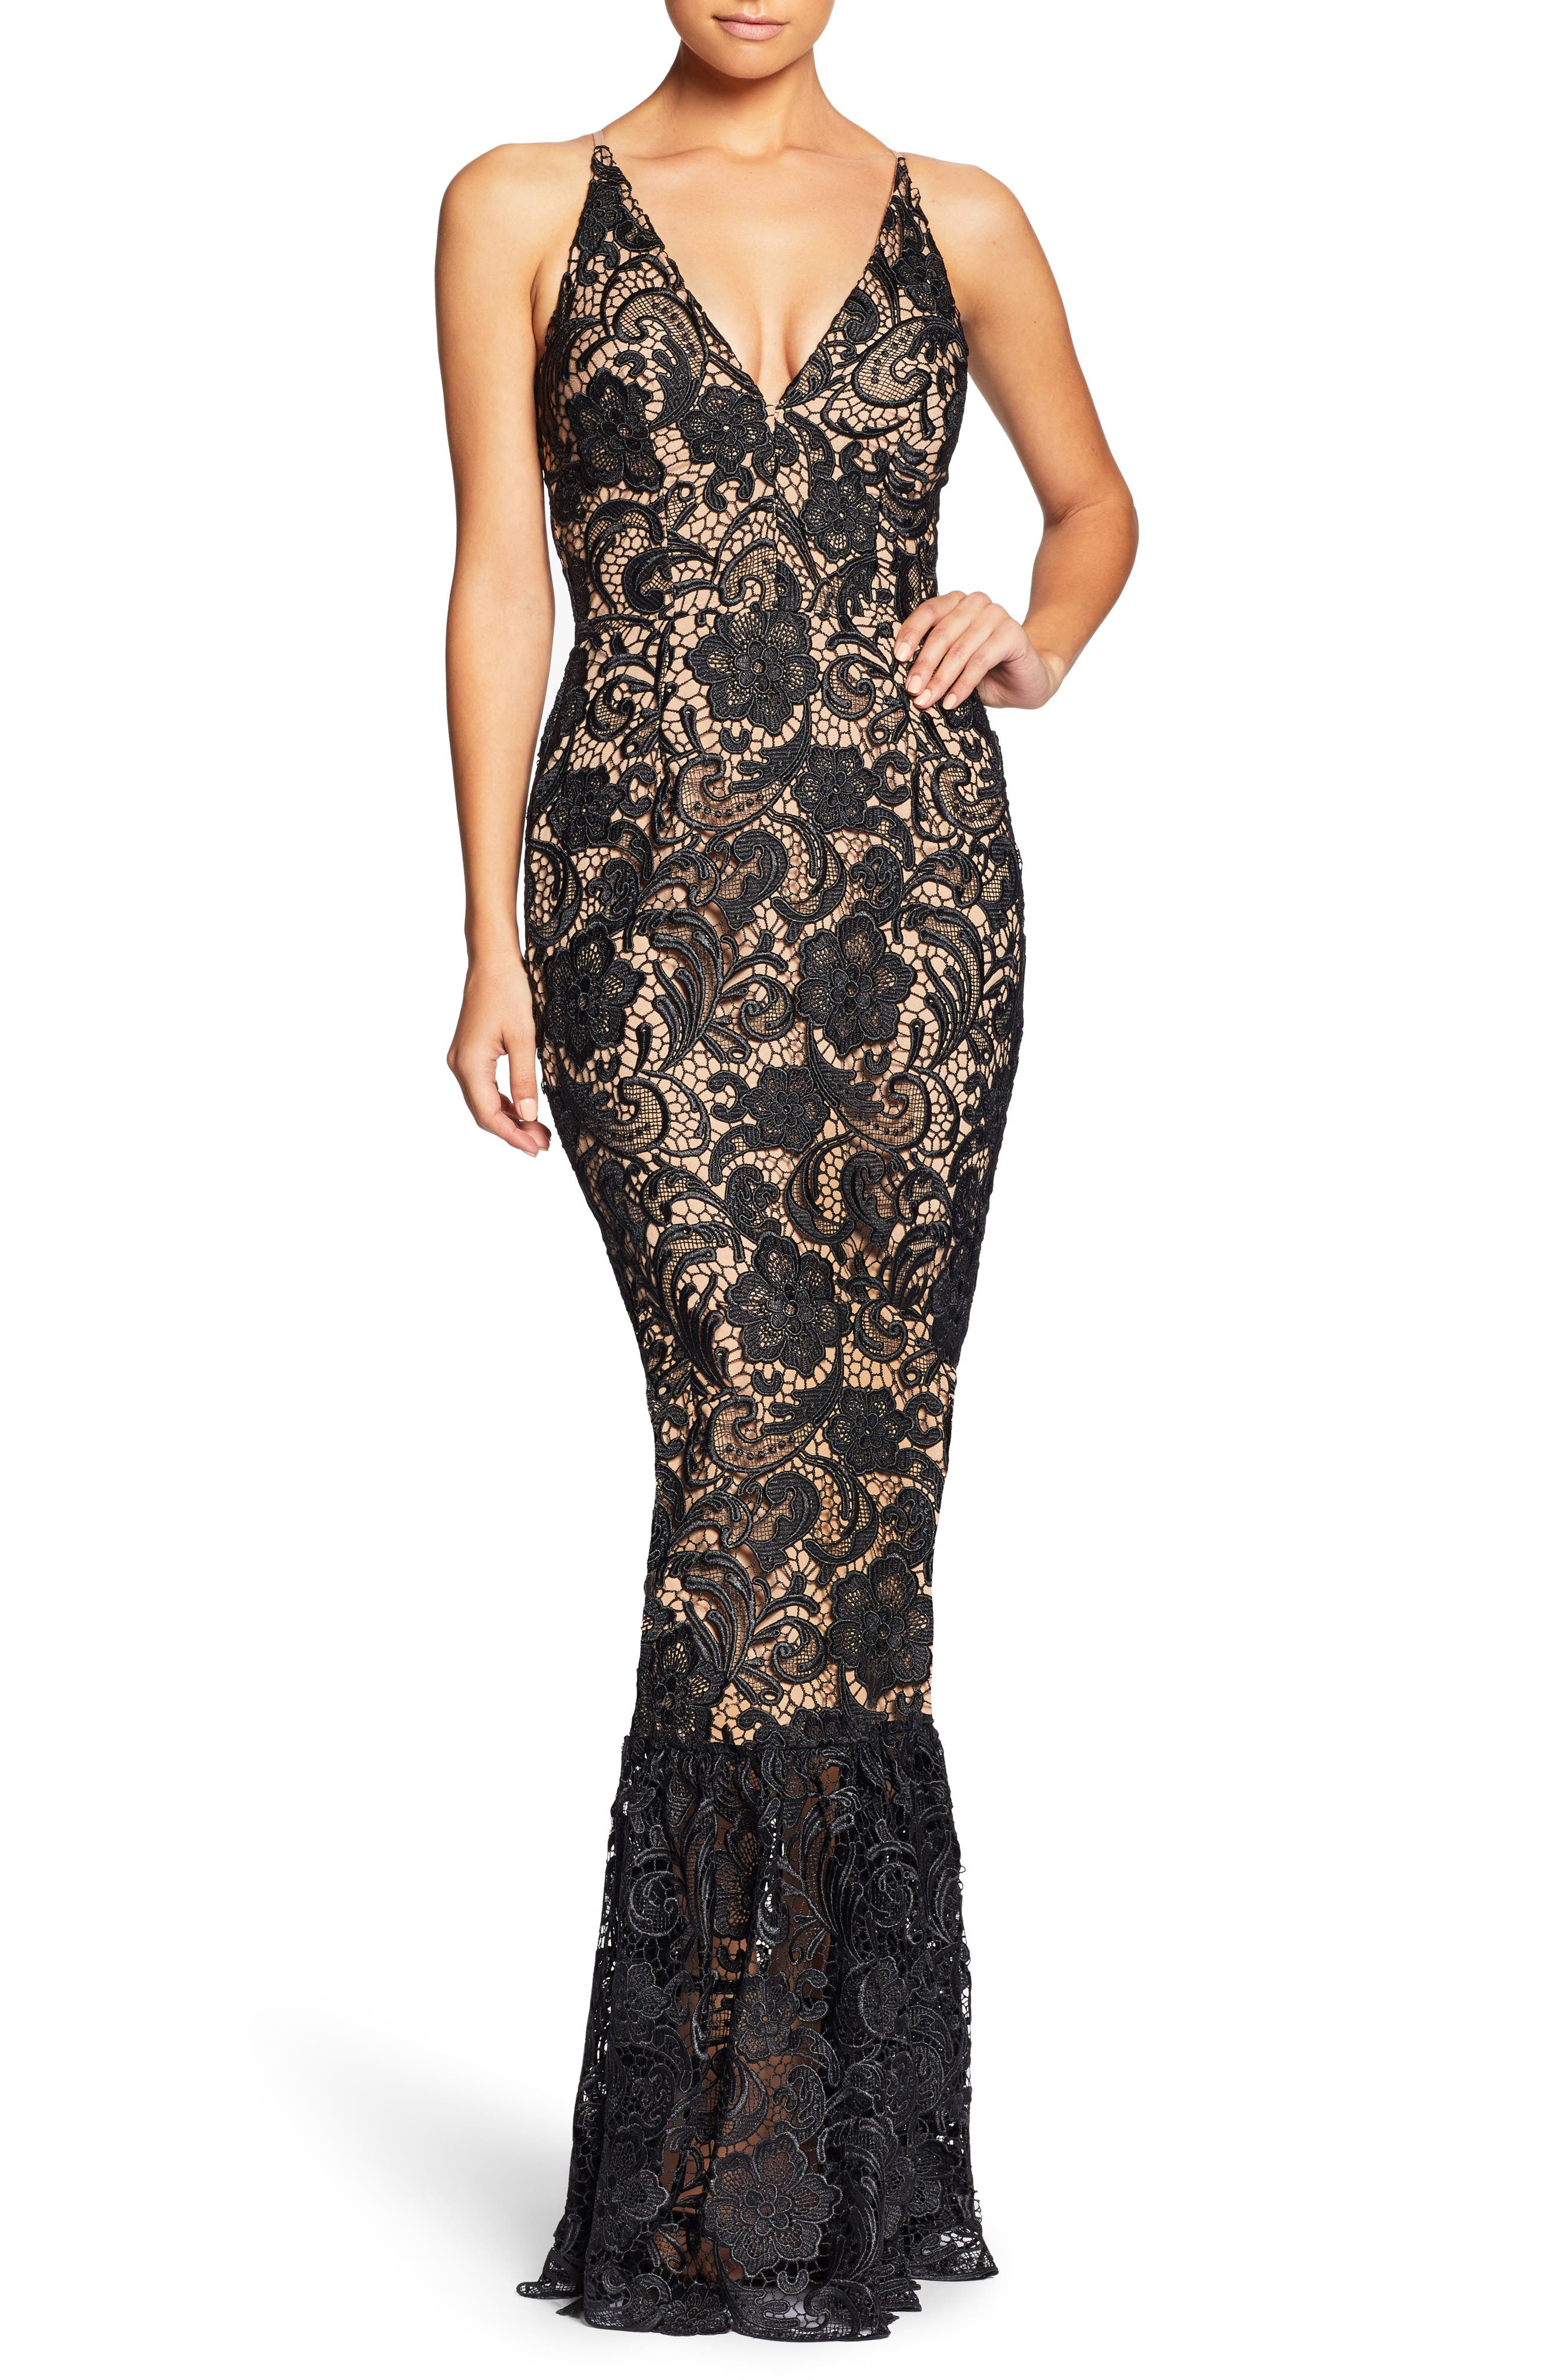 Sophia Crochet Lace Mermaid Gown,                             Main thumbnail 1, color,                             Black/ Nude